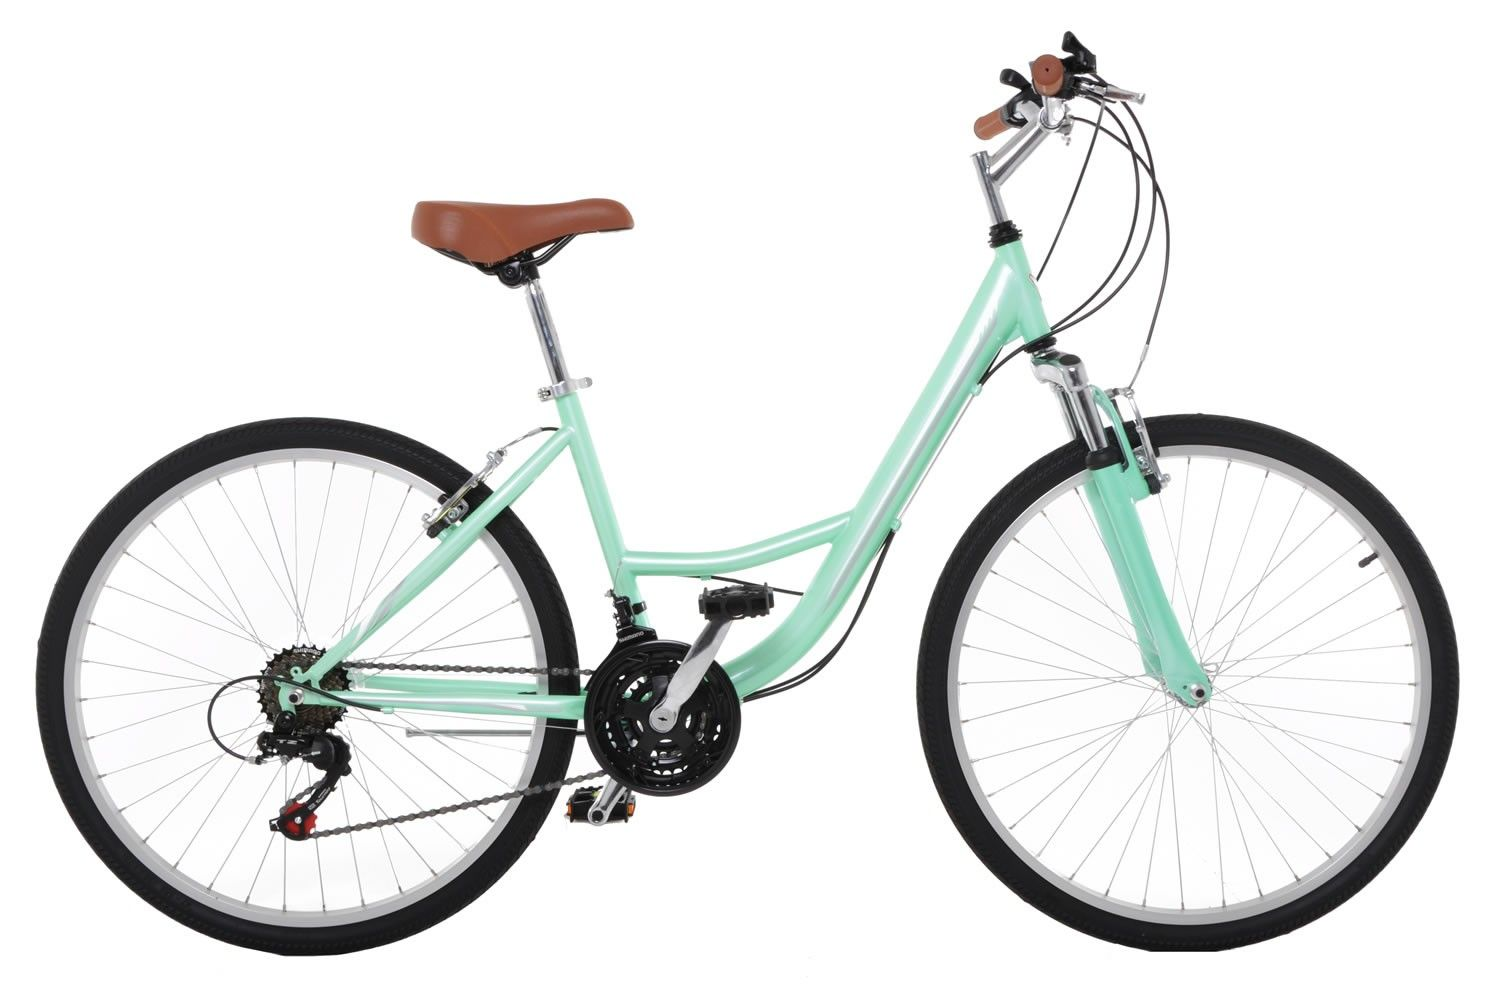 Designed For Comfort The Vilano C1 Comfort Is A Versatile All Purpose Road Trail Bike Equally At Ease In Town Or The Campground Comfort Bike Bike Road Bike